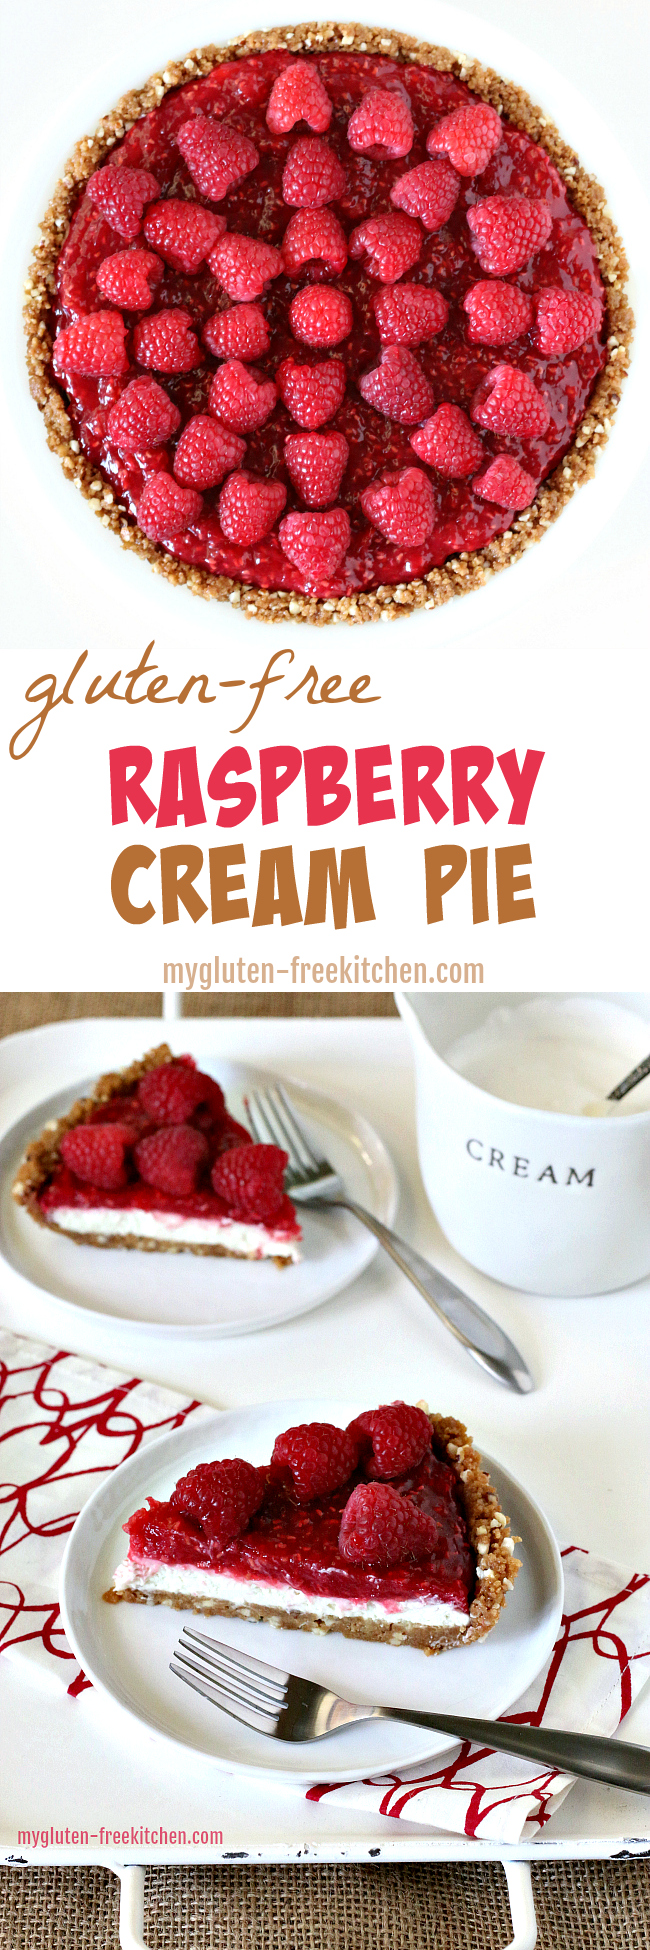 Gluten-free Raspberry Cream Pie Recipe. Delicious no-bake gluten-free pie recipe. #glutenfreepie